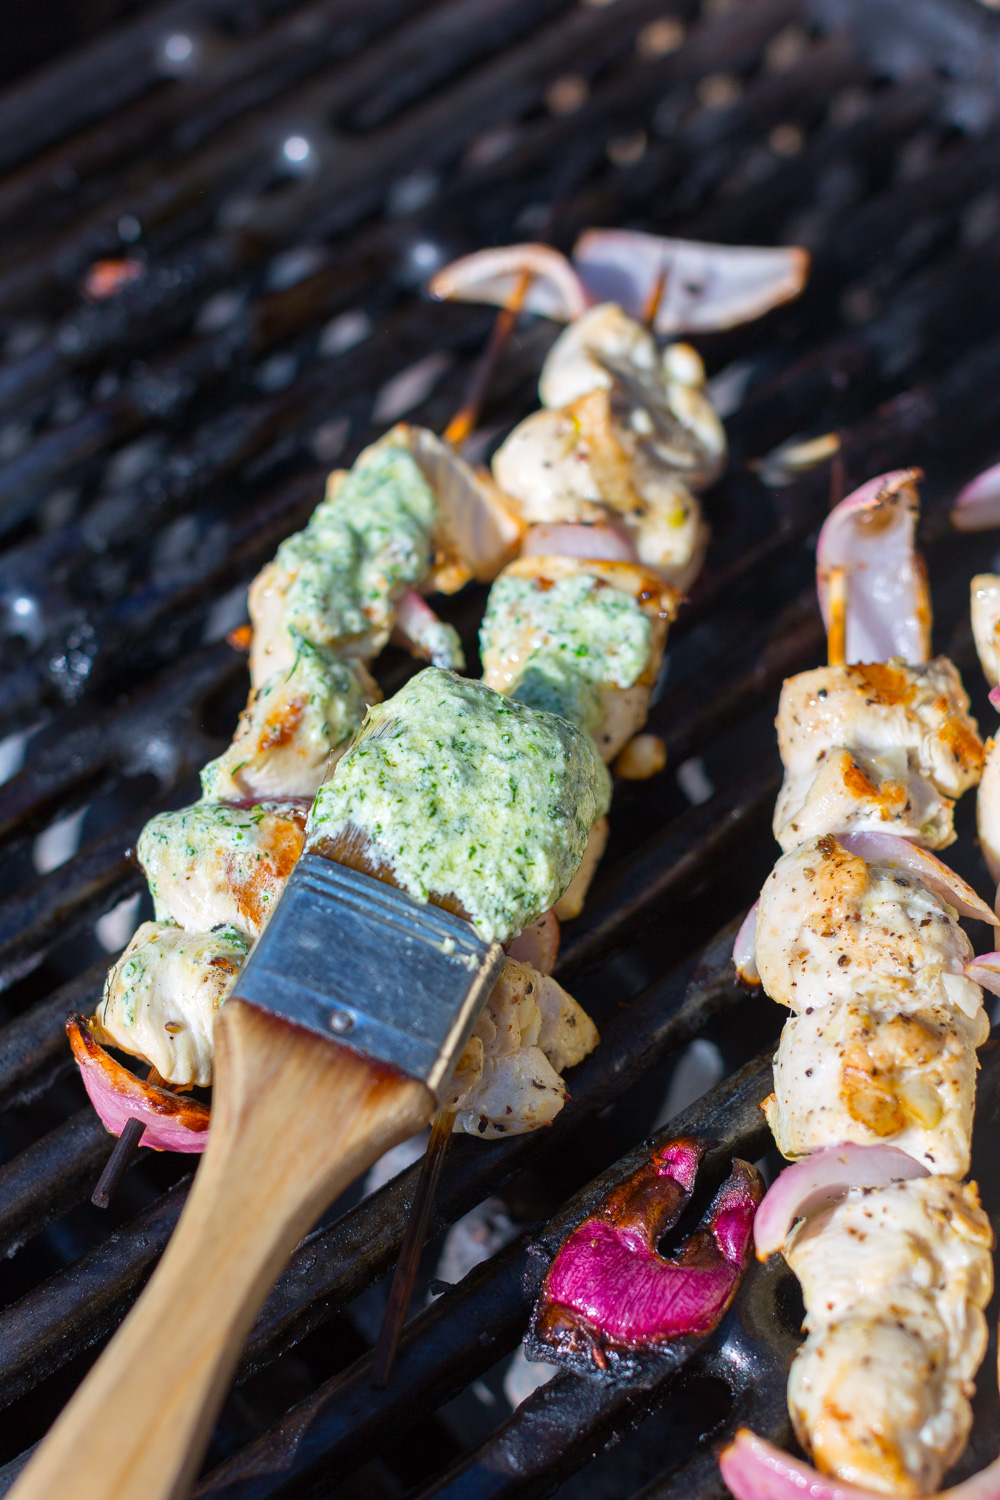 Baste the grilled chicken skewers with Herby Feta Sauce.